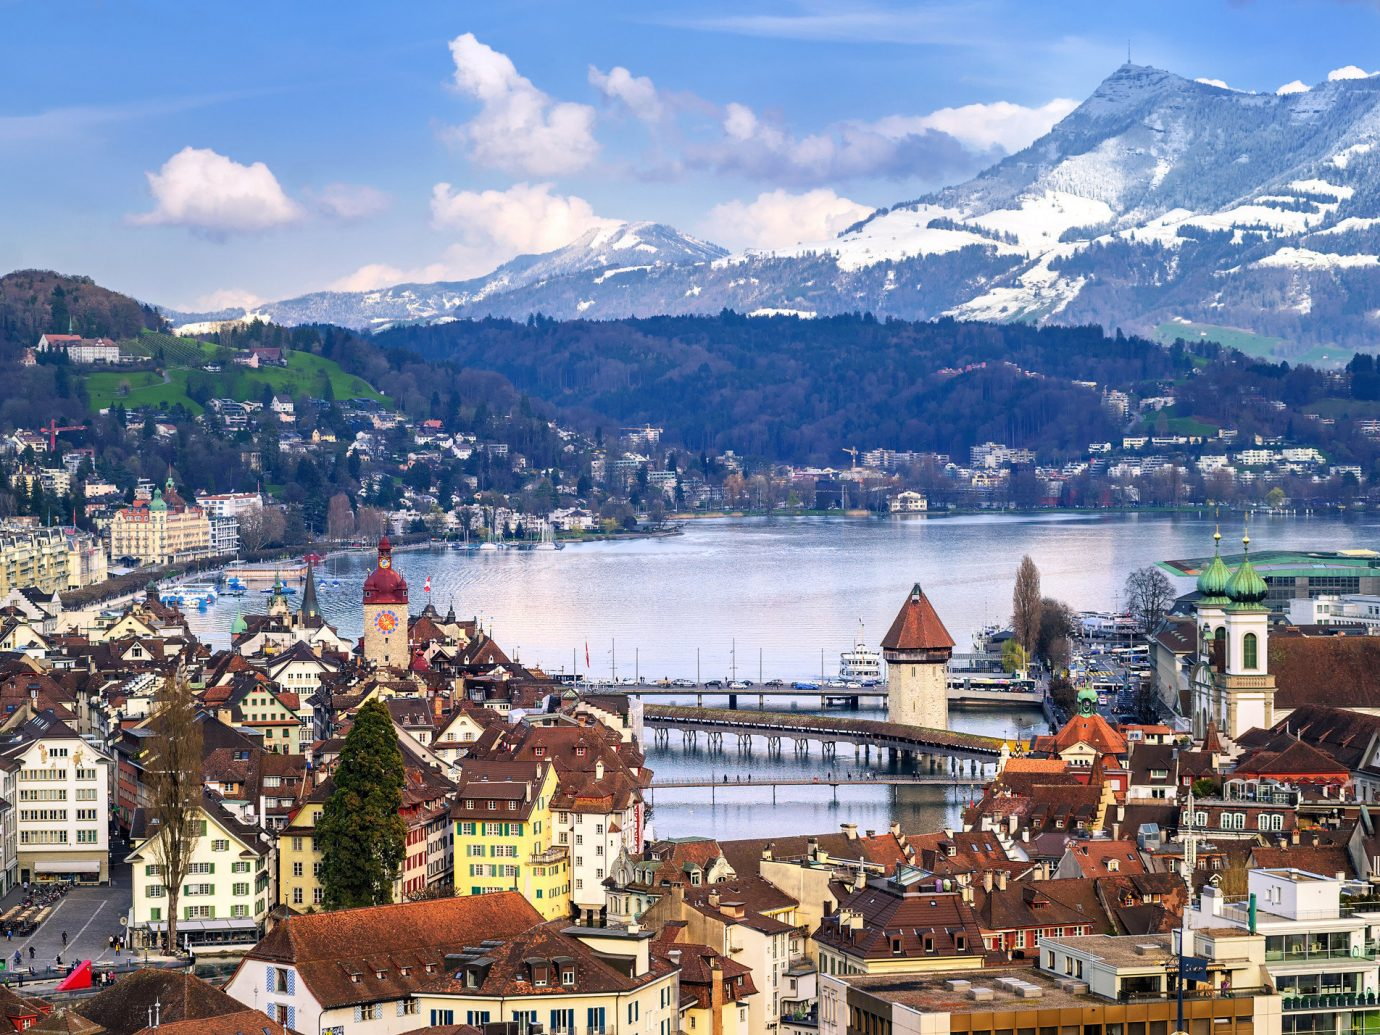 Lakes + Rivers Outdoors + Adventure mountain sky outdoor City mountain range mountain village Town mountainous landforms Winter urban area alps cityscape tourism snow mount scenery hill station Lake Village bird's eye view water tourist attraction suburb tree landscape panorama glacial landform